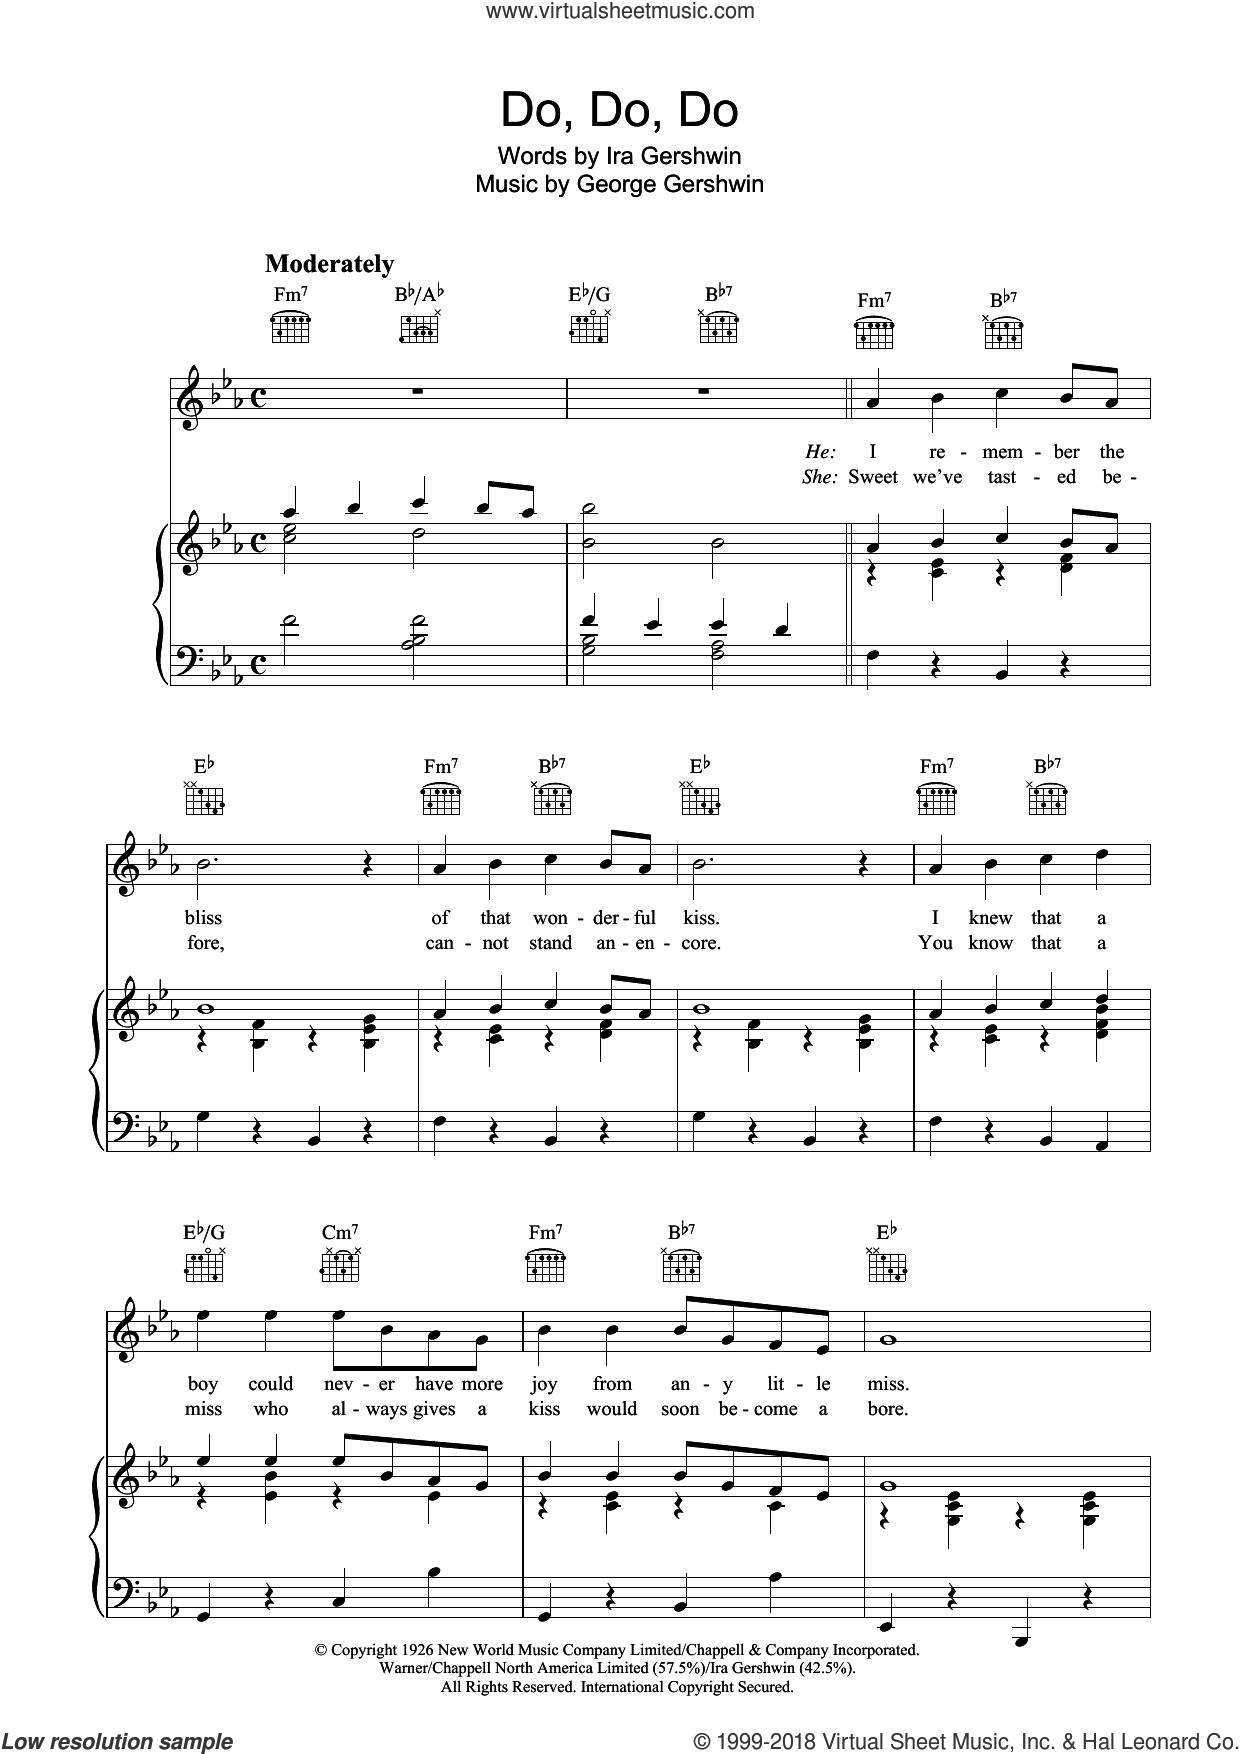 Do Do Do sheet music for voice, piano or guitar by Ira Gershwin